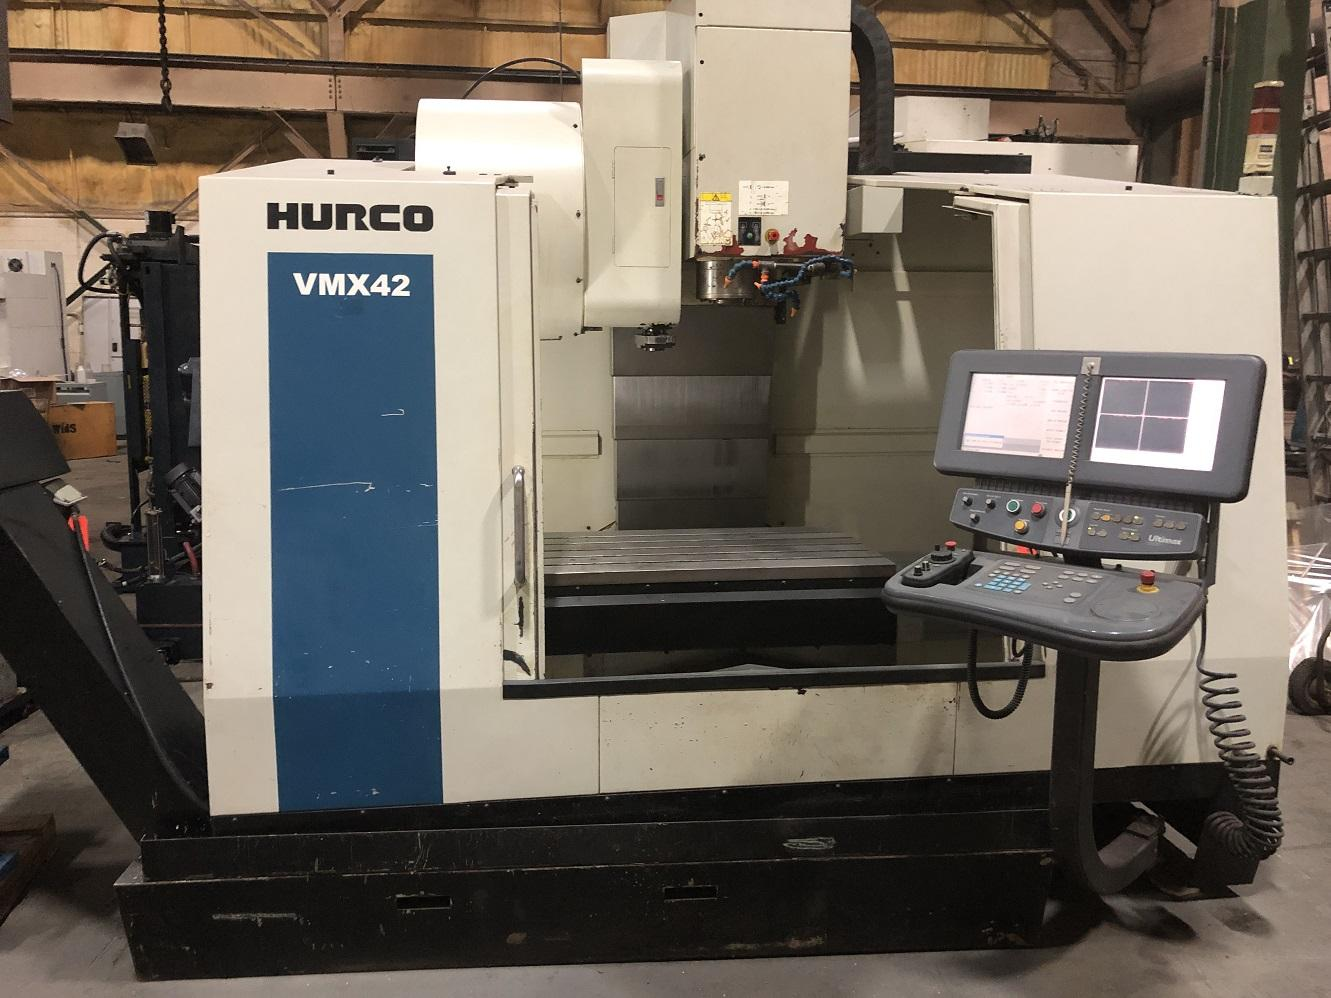 Hurco VMX42 CNC Vertical Machining Center w/WinMax Control, 10K Spindle, 42